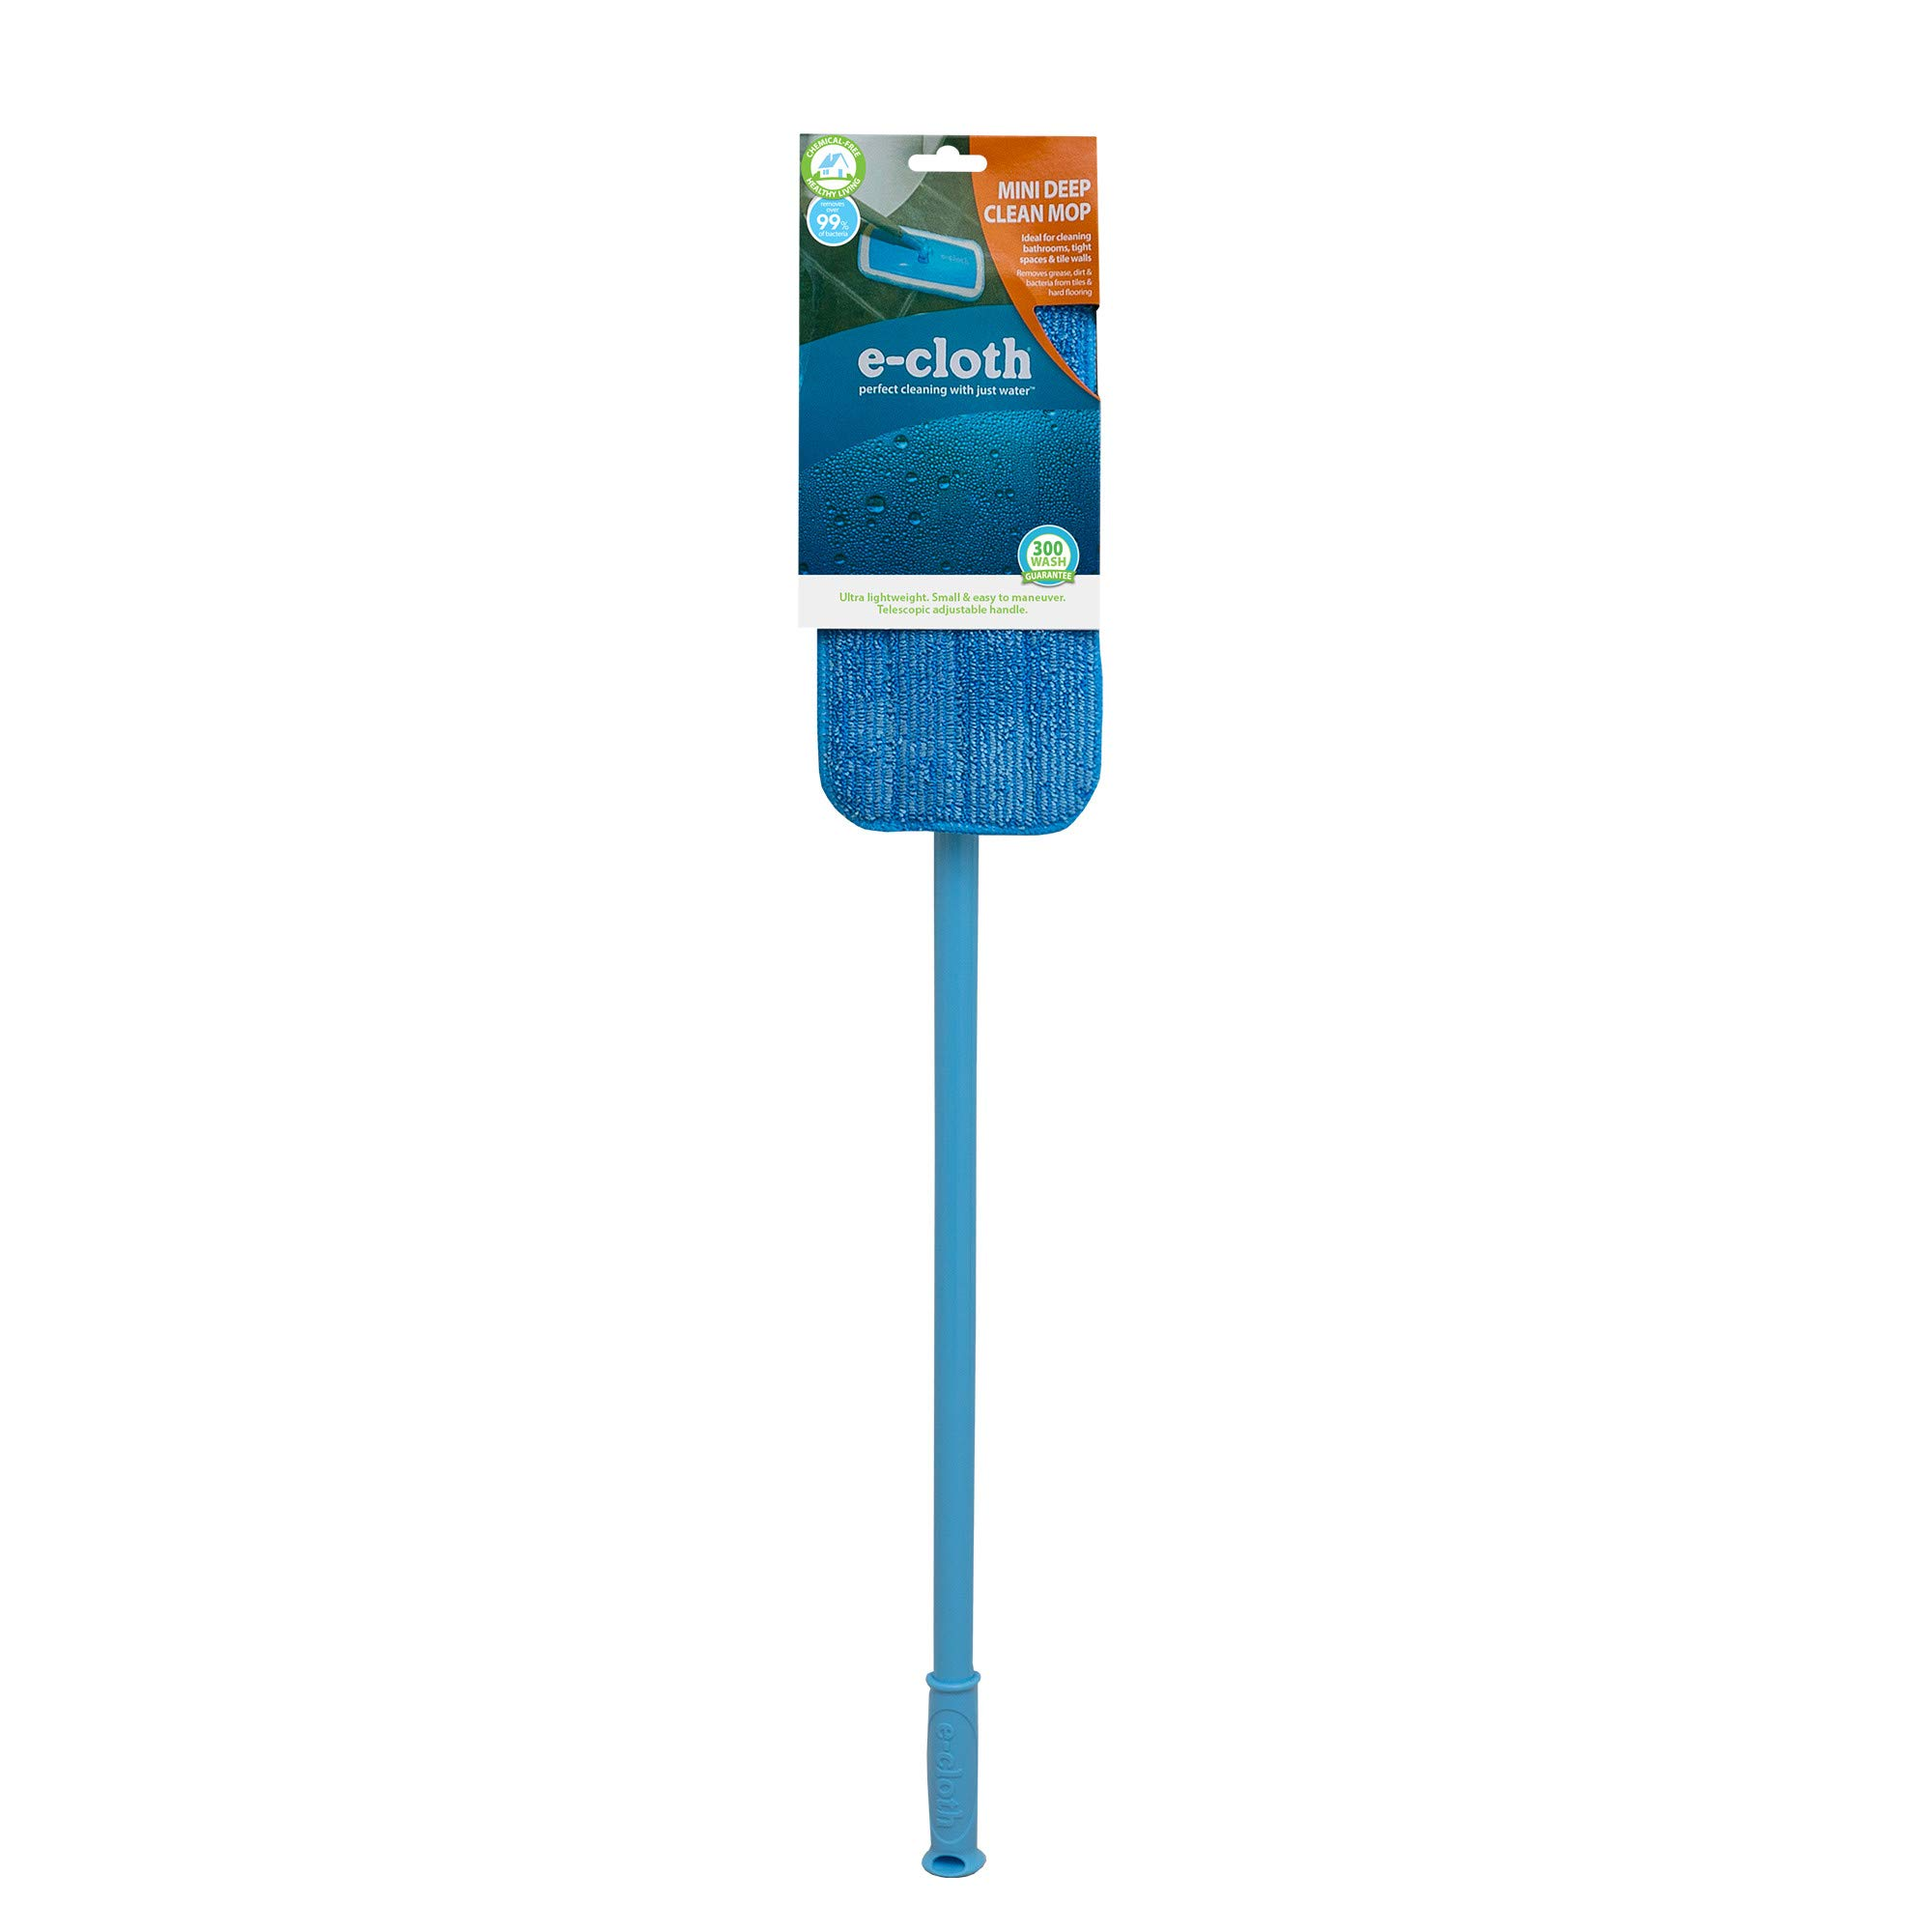 E-Cloth Mini Deep Clean Mop - Compact European Microfiber Damp Mop with Sturdy Telescoping Handle by E-Cloth (Image #3)